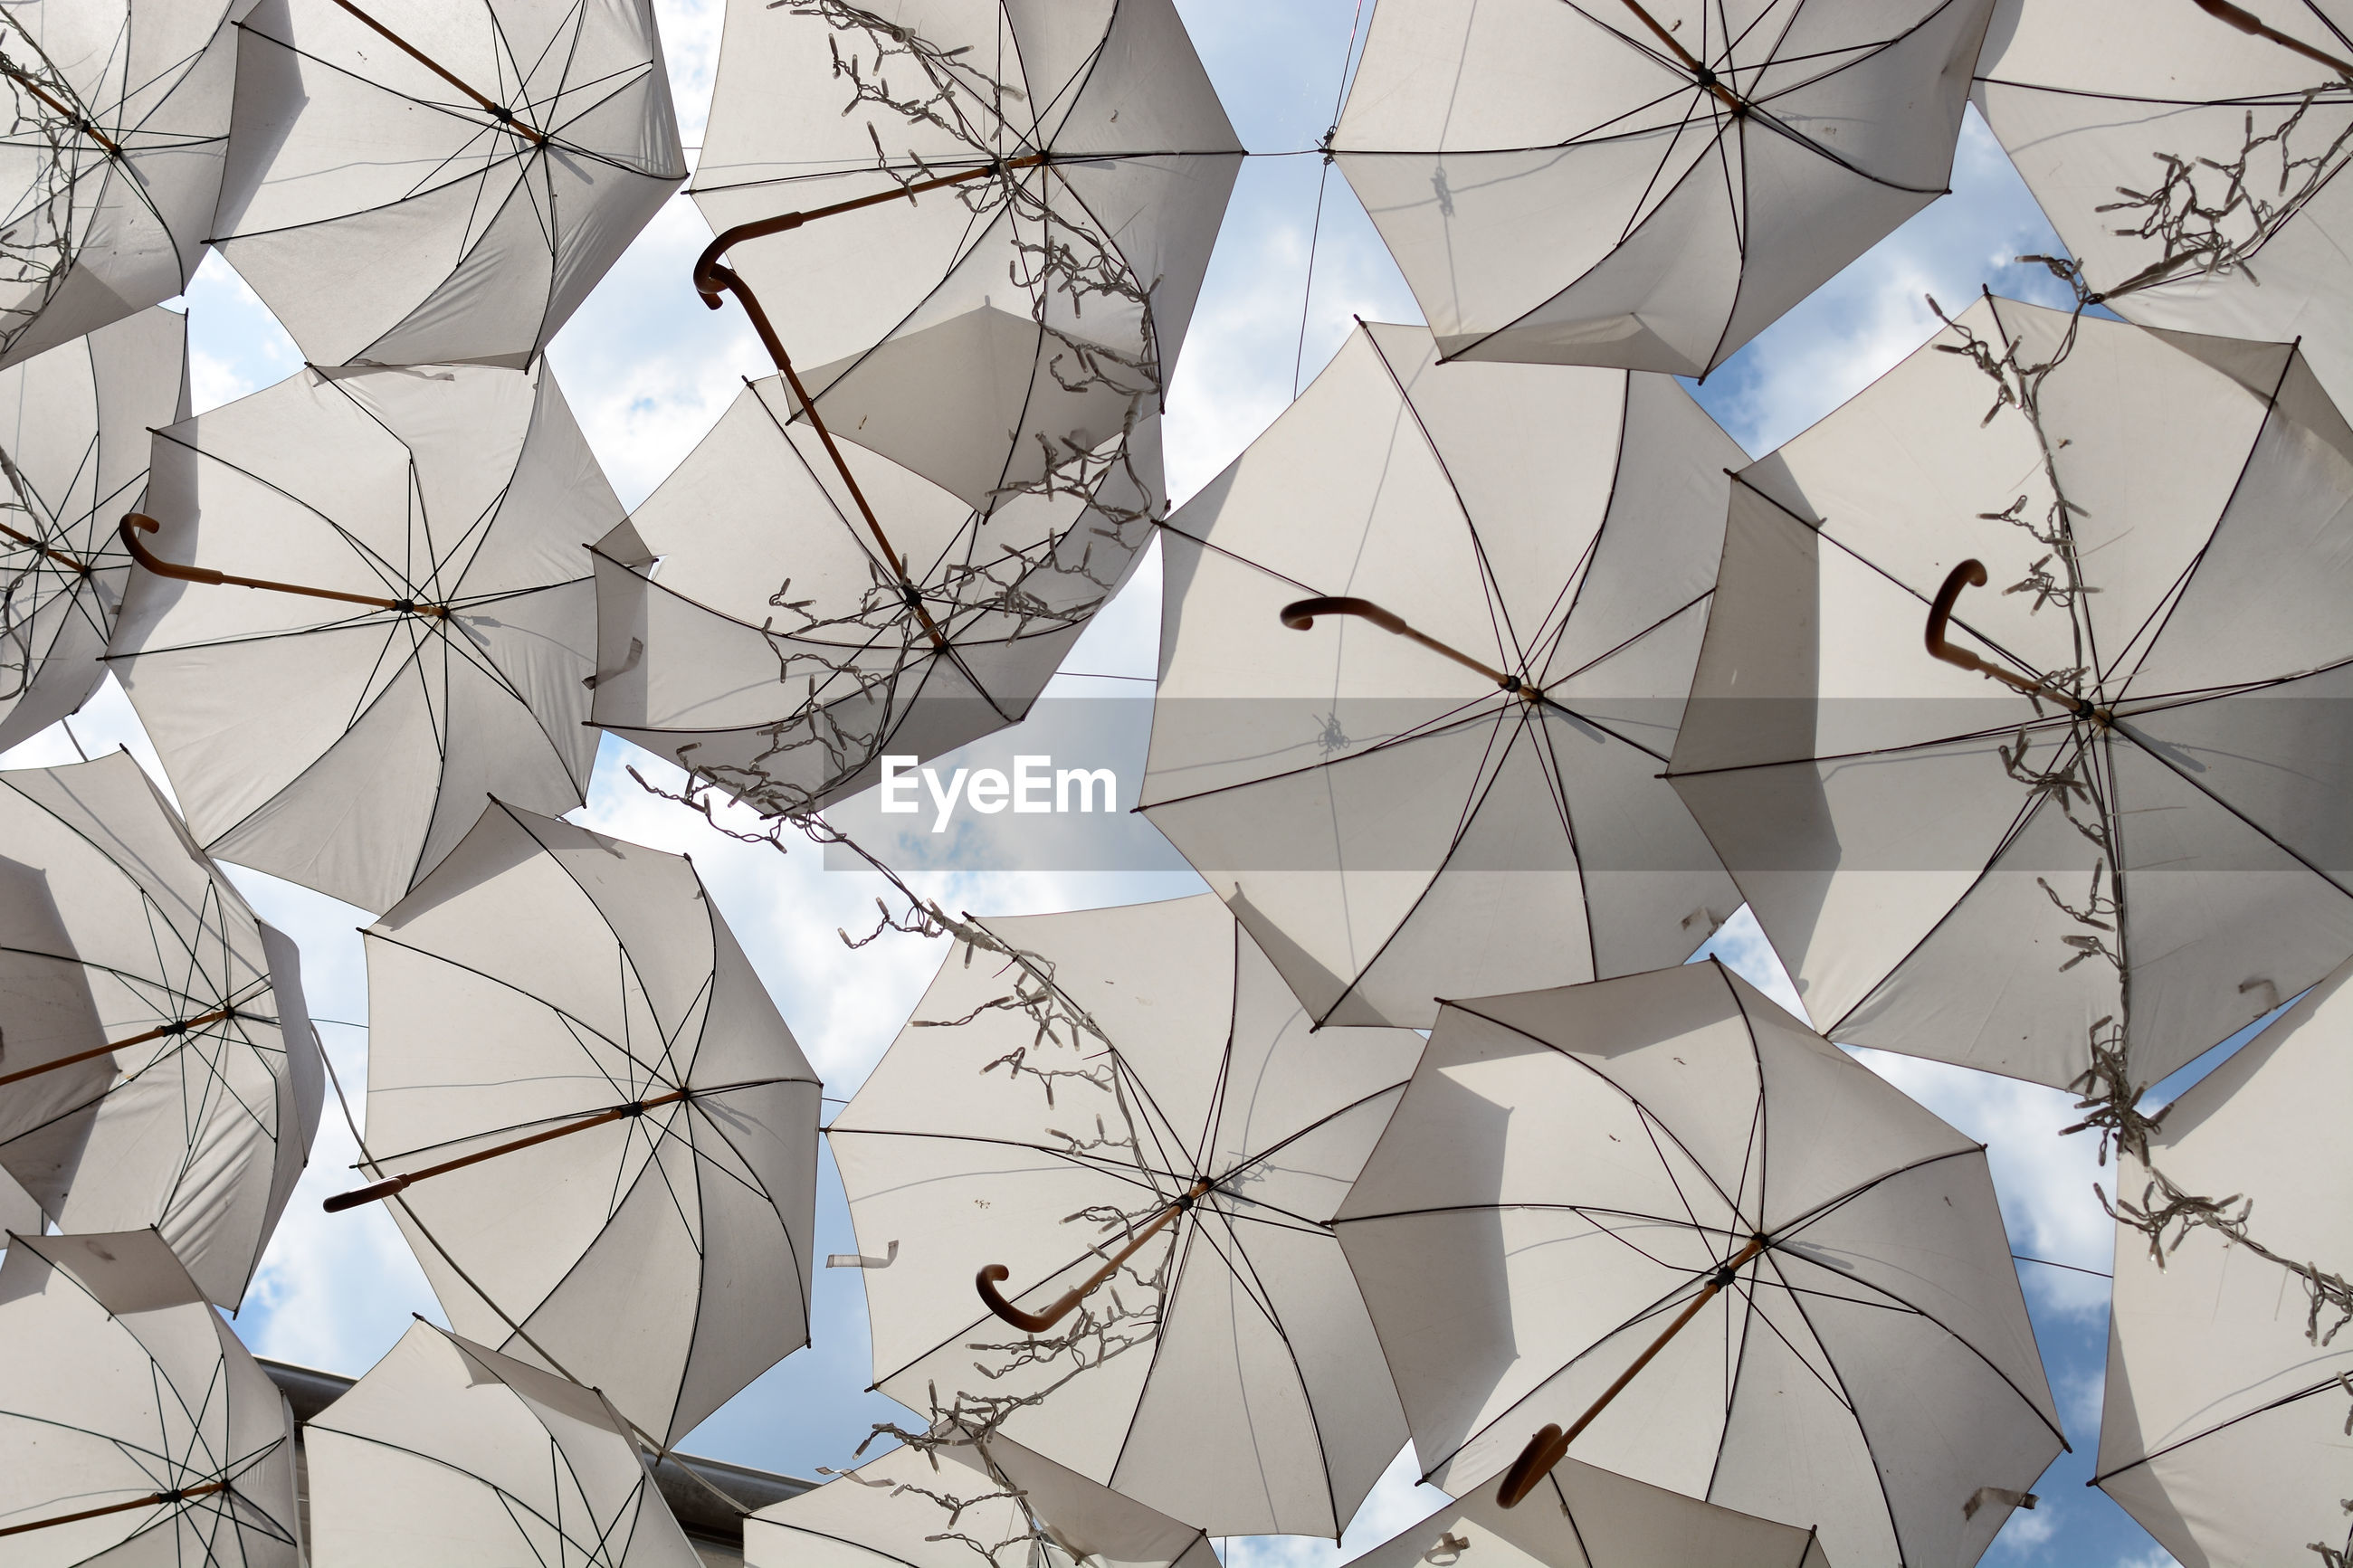 LOW ANGLE VIEW OF UMBRELLAS HANGING AGAINST CEILING